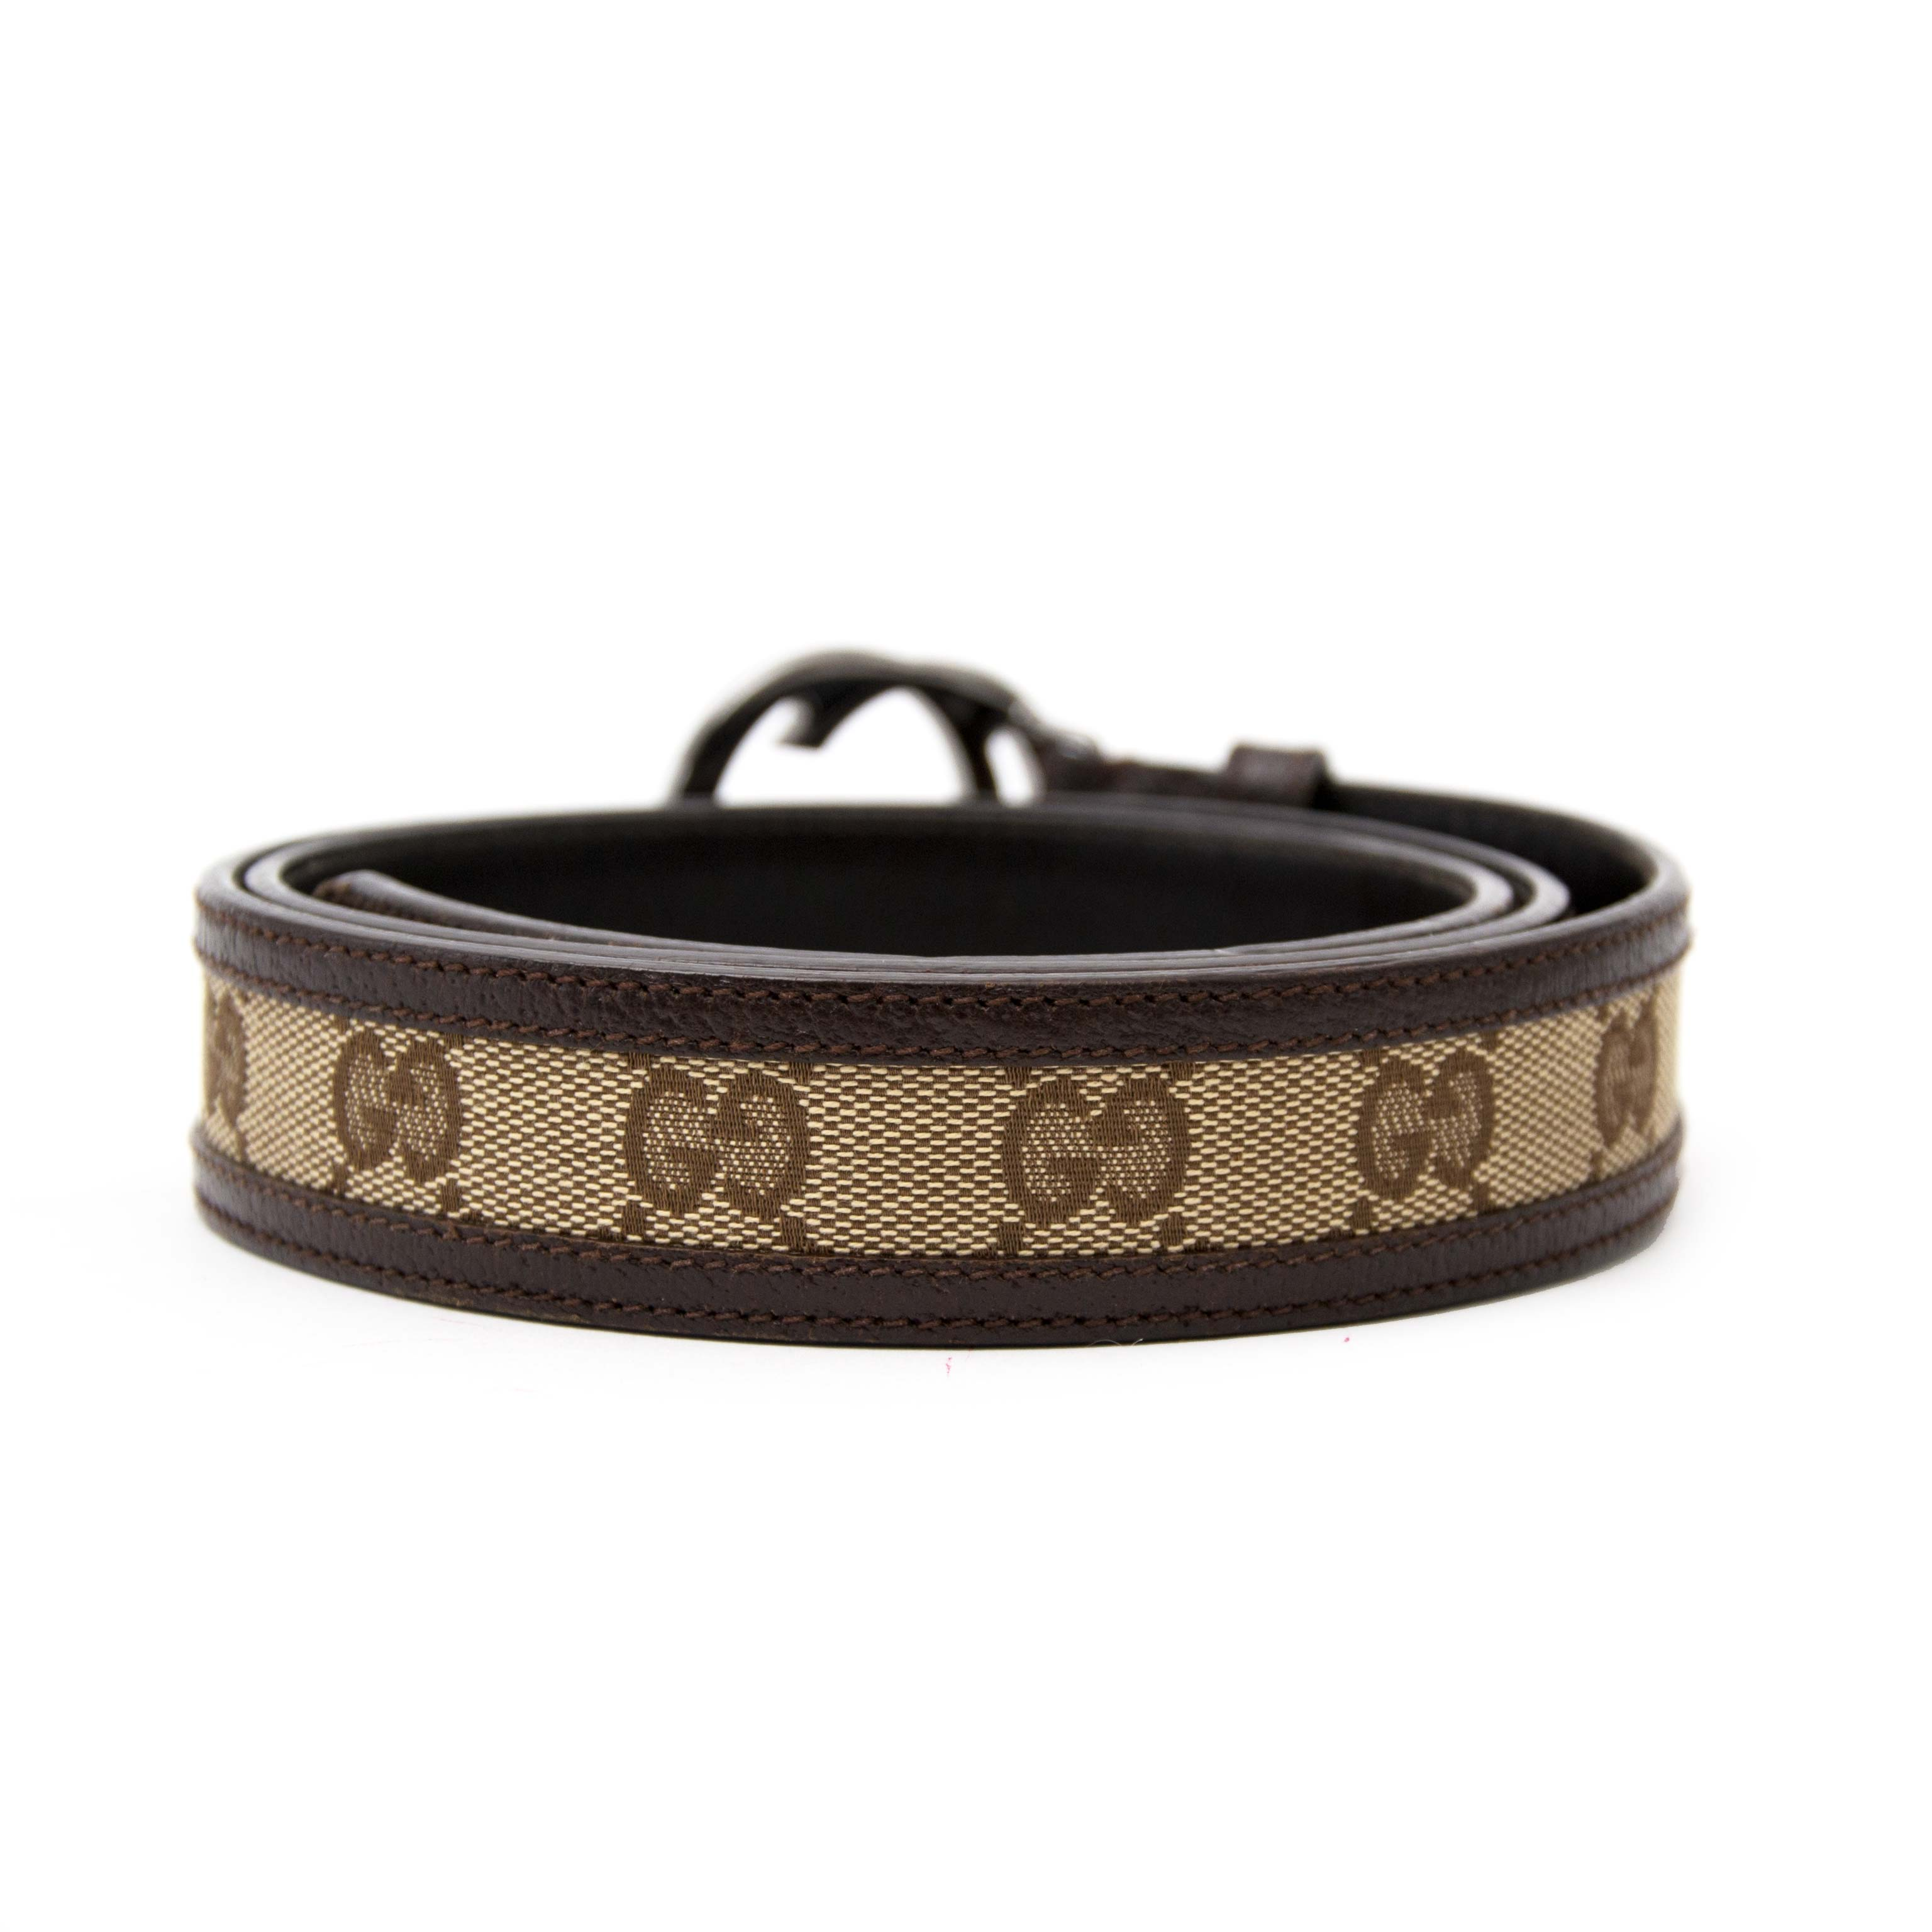 Looking for a beautiful belt? Gucci Monogram GG Belt for sale. www.labellov.com. Safe and secure shopping, worldwide shipping.